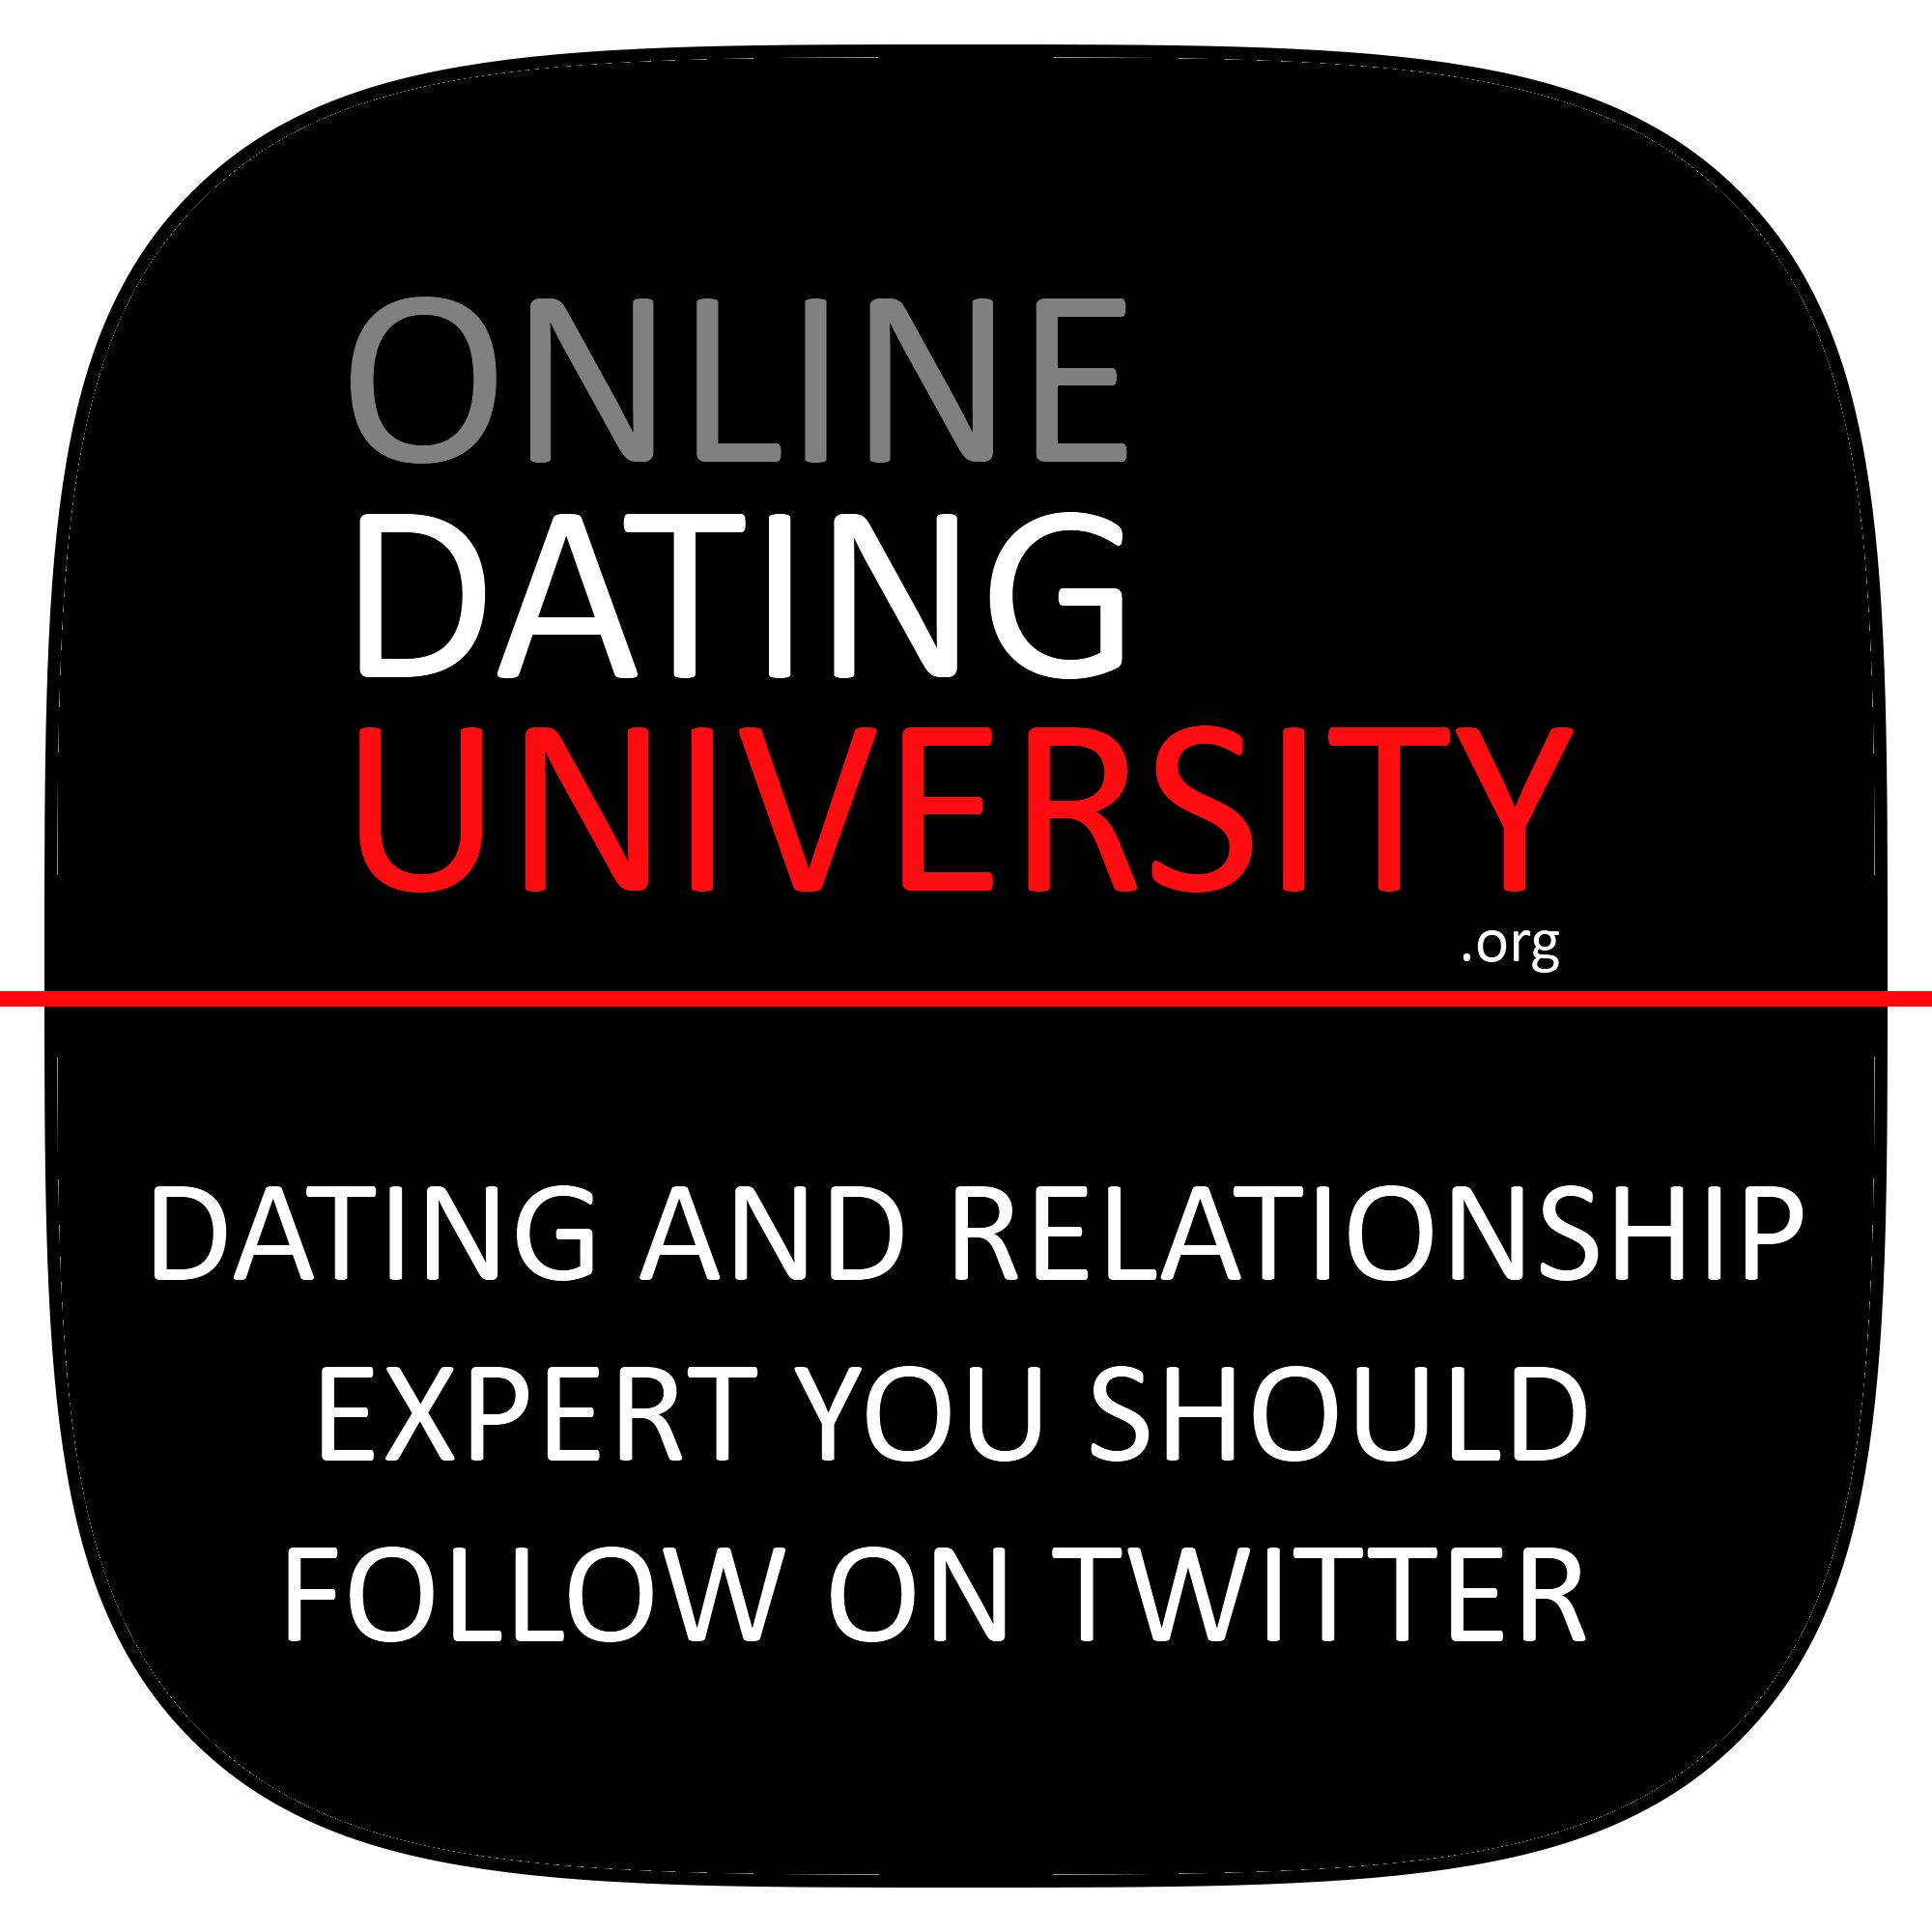 pool online hookup & dating An online dating service is a company that provides specific sites with specific demographics have become popular as a way to narrow the pool of potential.